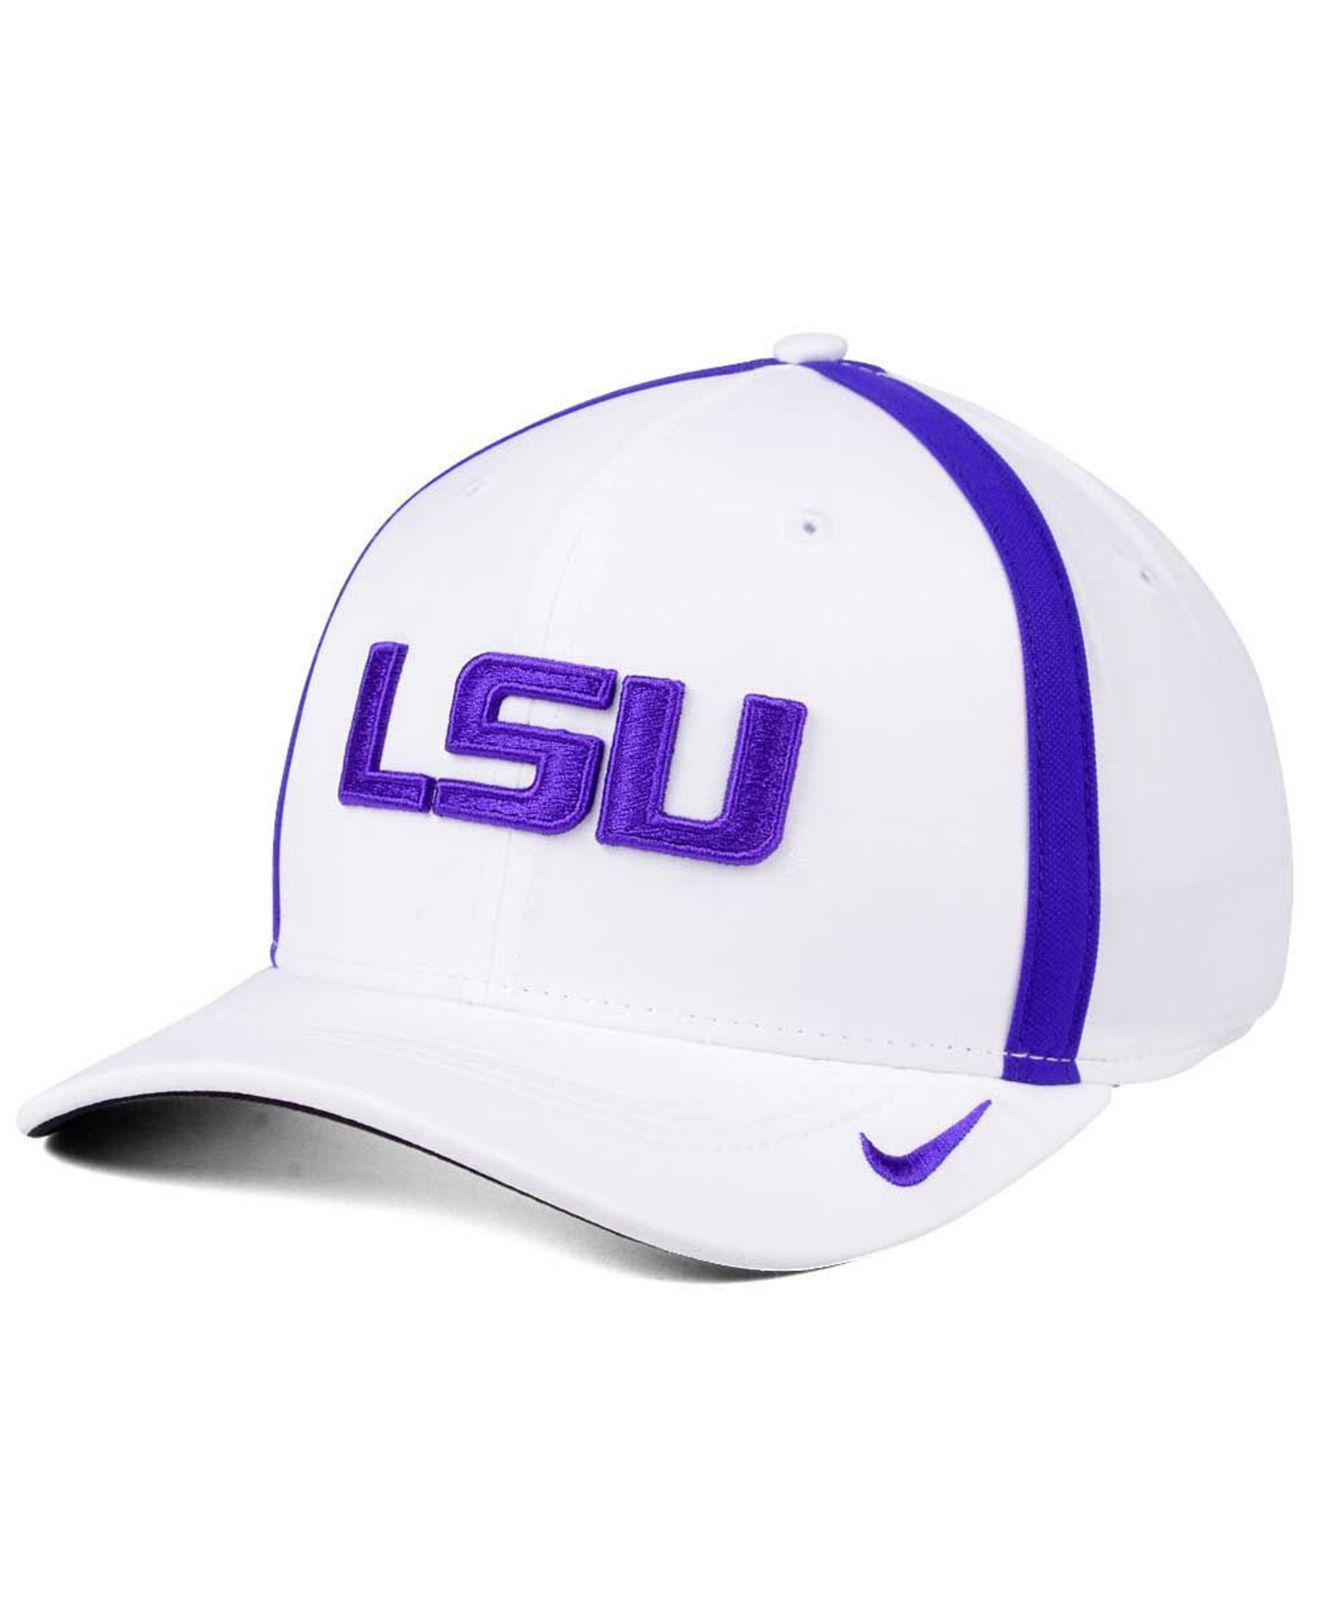 promo code 8be8b f17d2 ... top quality nike. mens white aerobill classic sideline swoosh flex cap  c8300 2d2ee